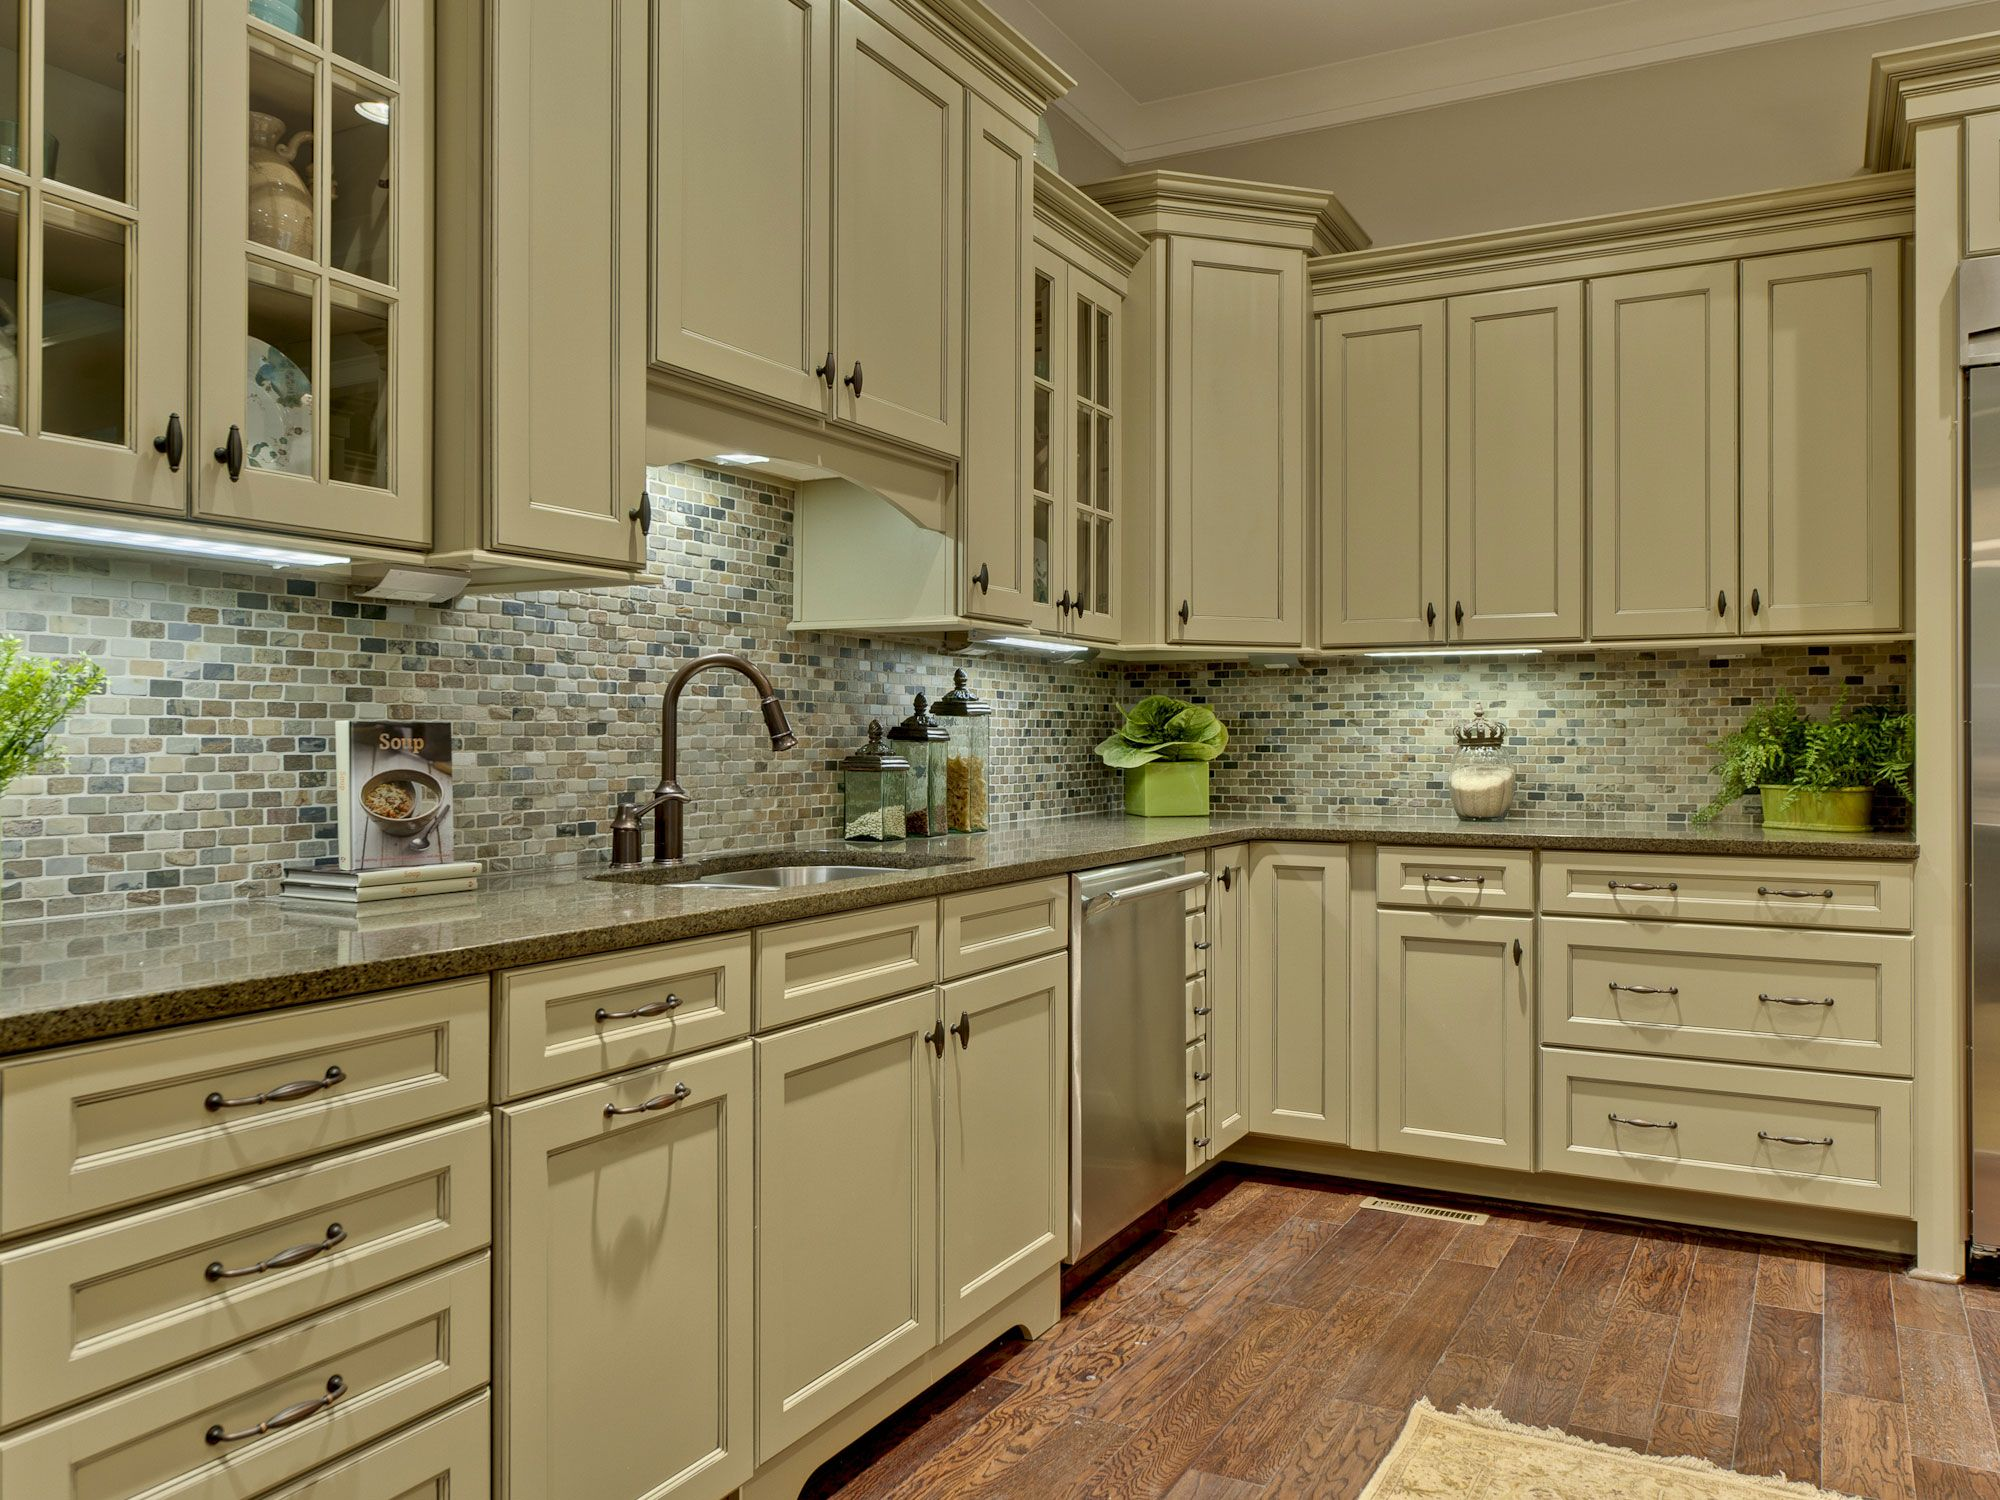 amazing refinished green kitchen cabinets to white painted kitchen